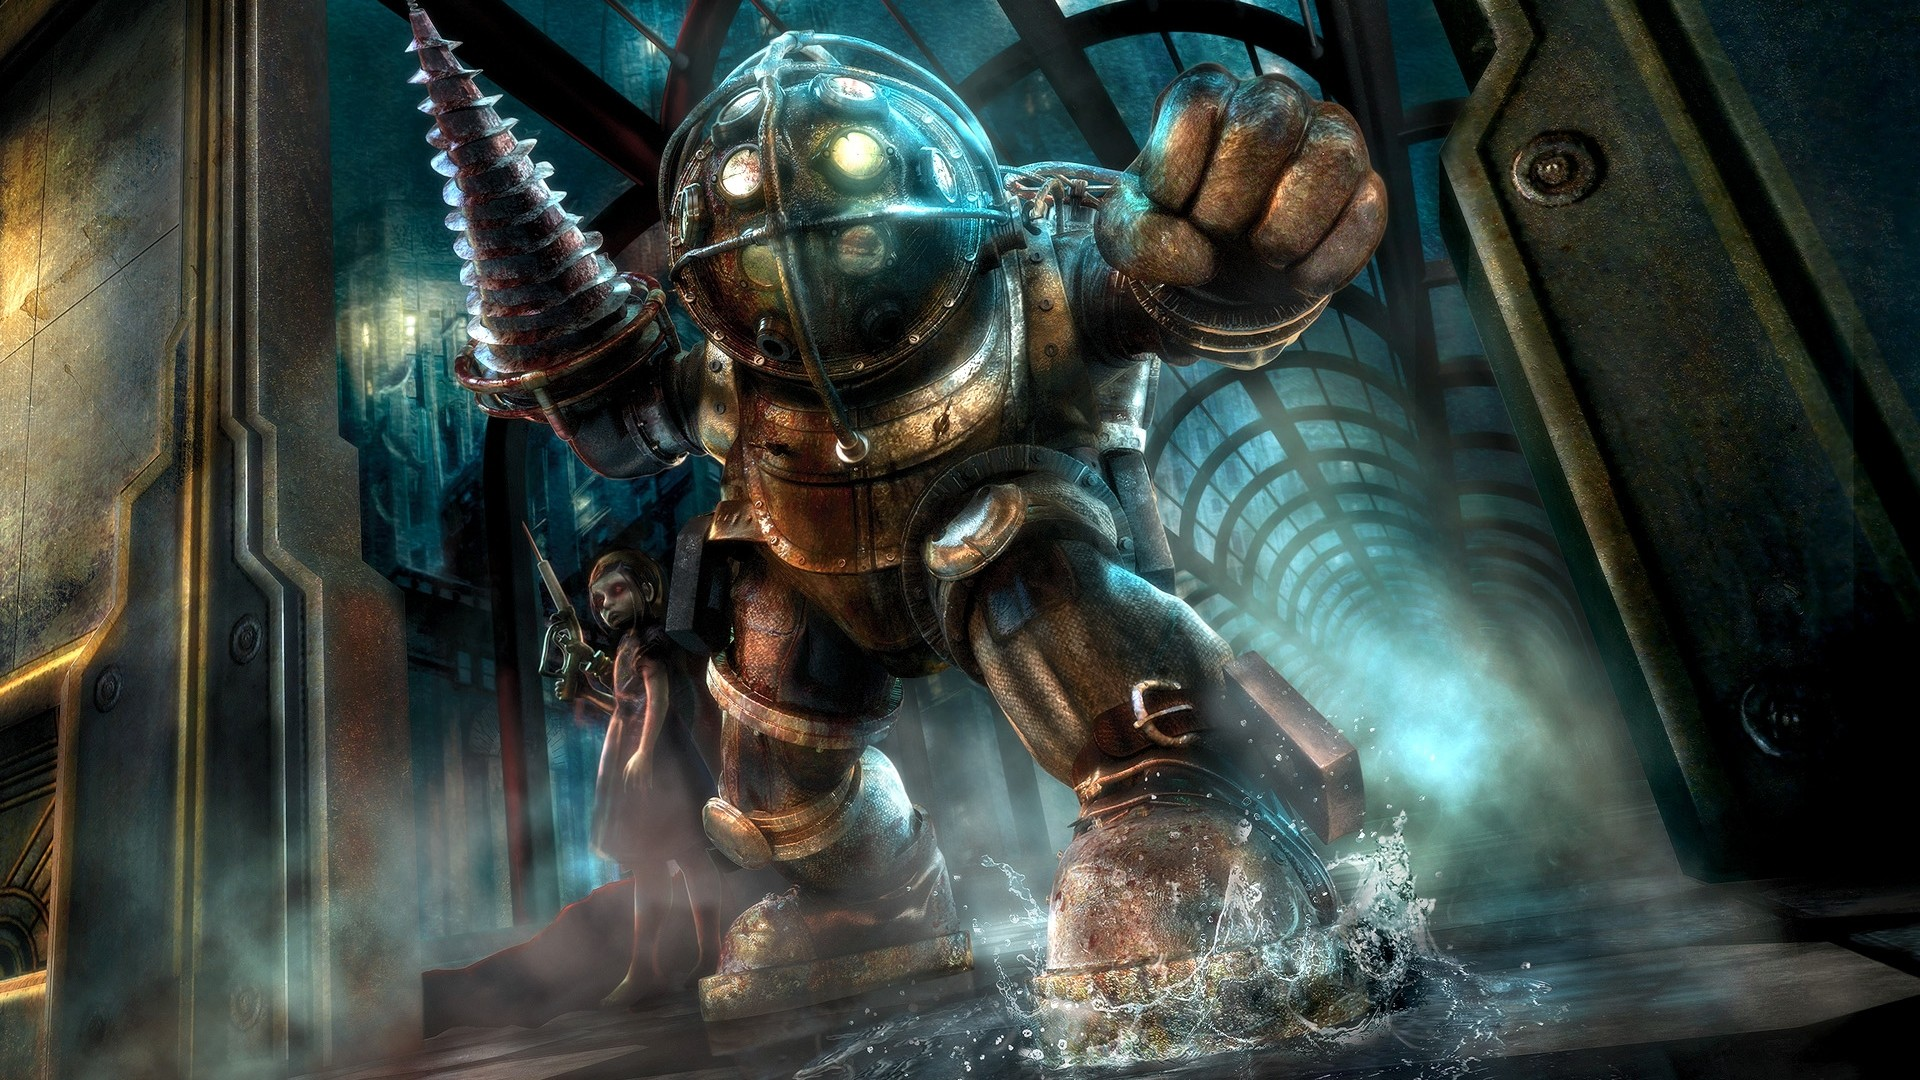 Bioshock Wallpaper 4k 87 images in Collection Page 1 1920x1080